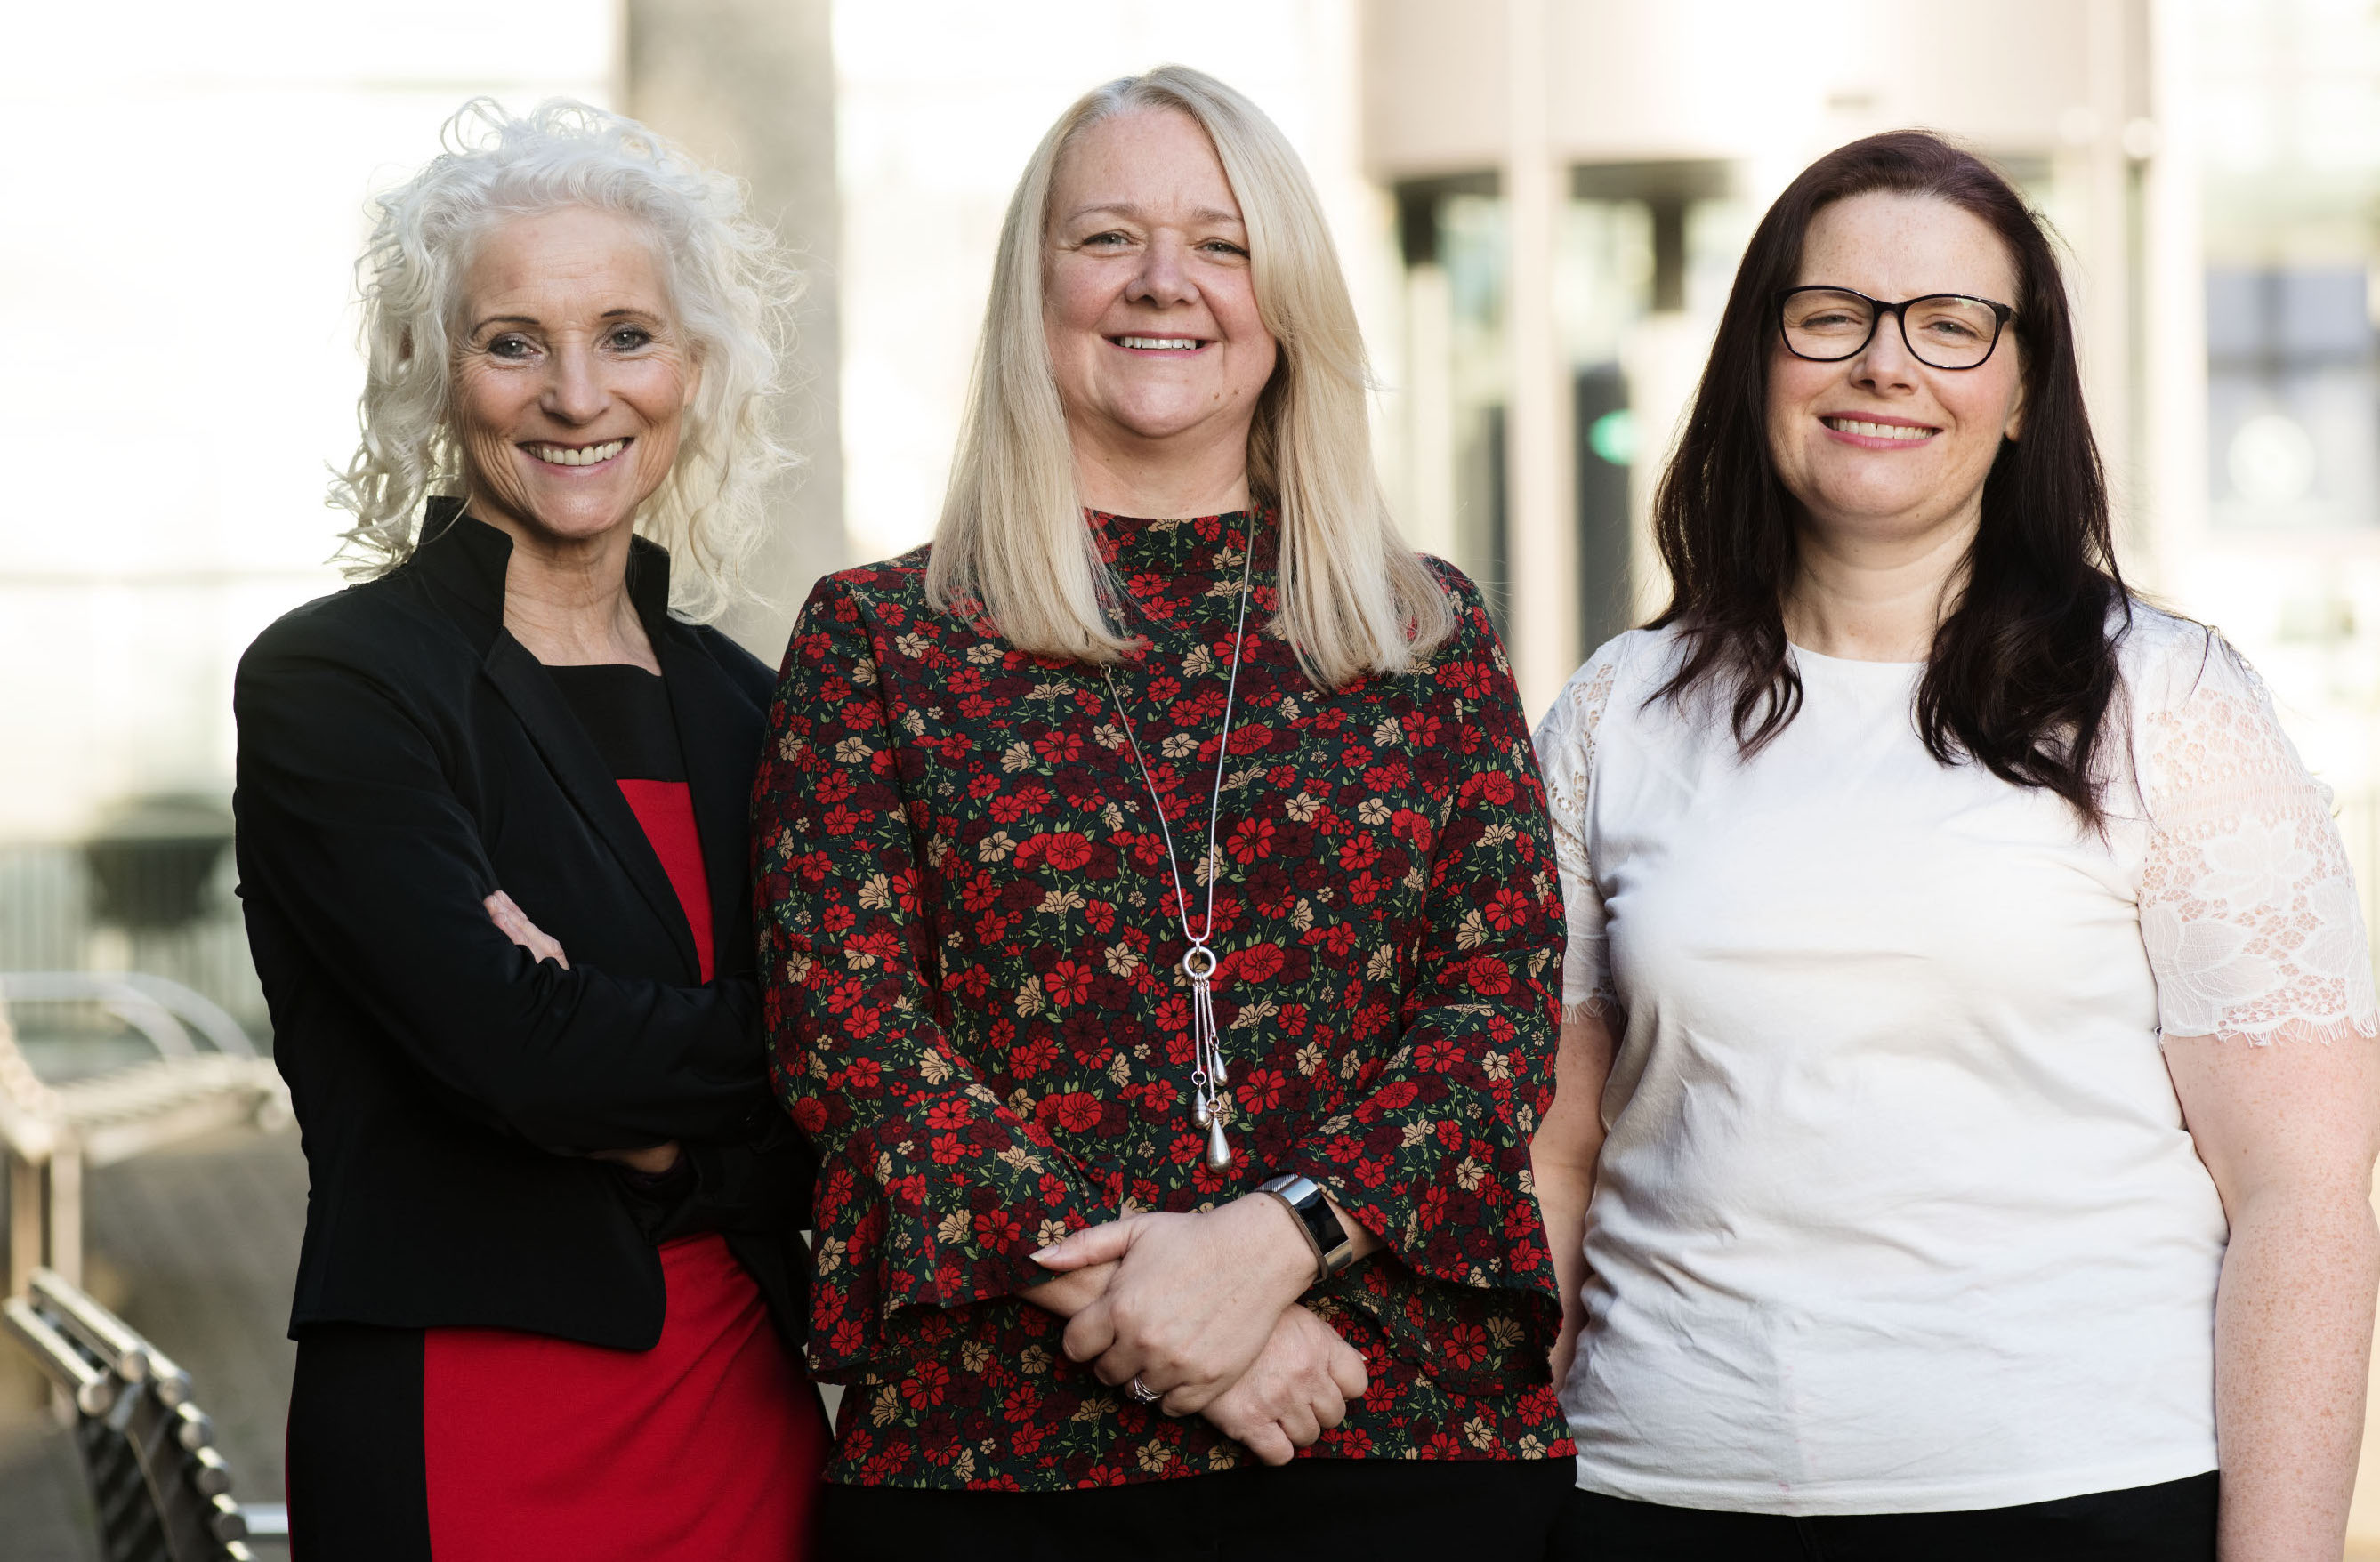 Ulster University puts the spotlight on Breastfeeding Research 2019